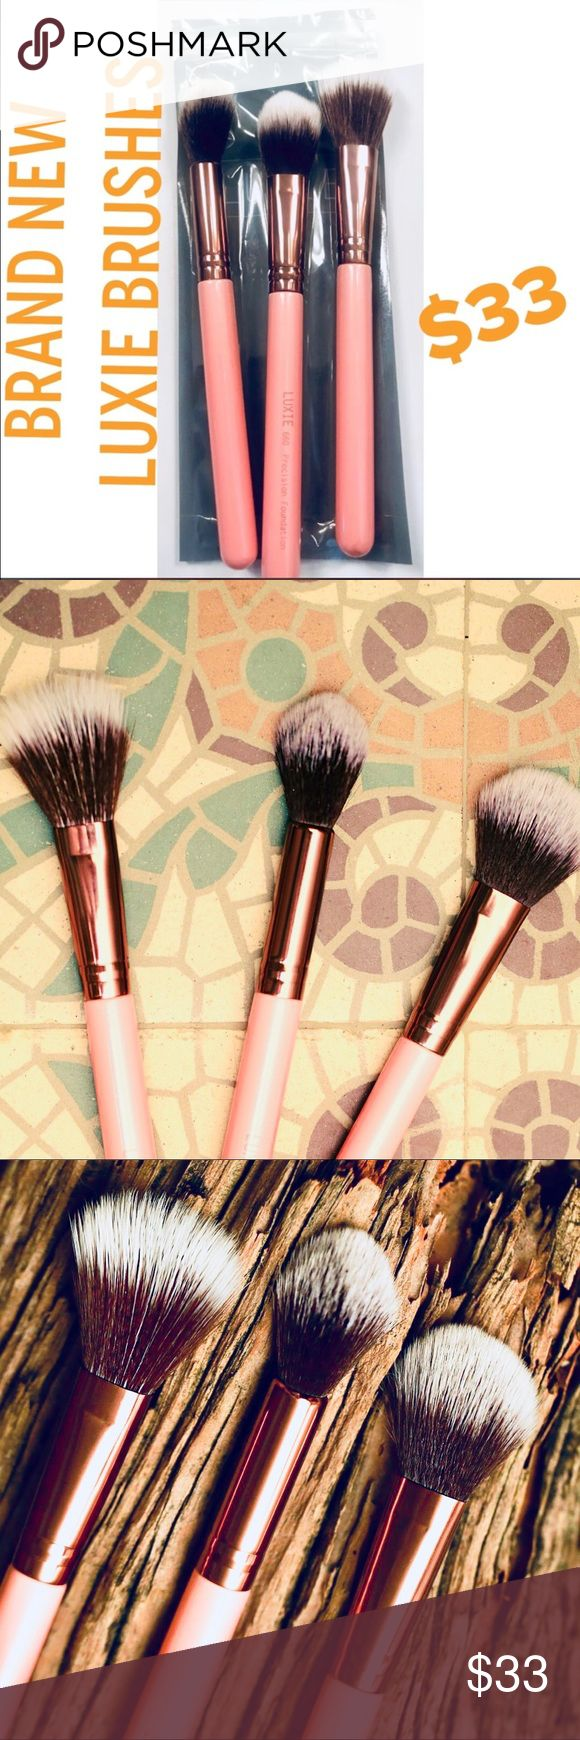 LUXIE Cosmetic Brushes Original Price 75 NWT